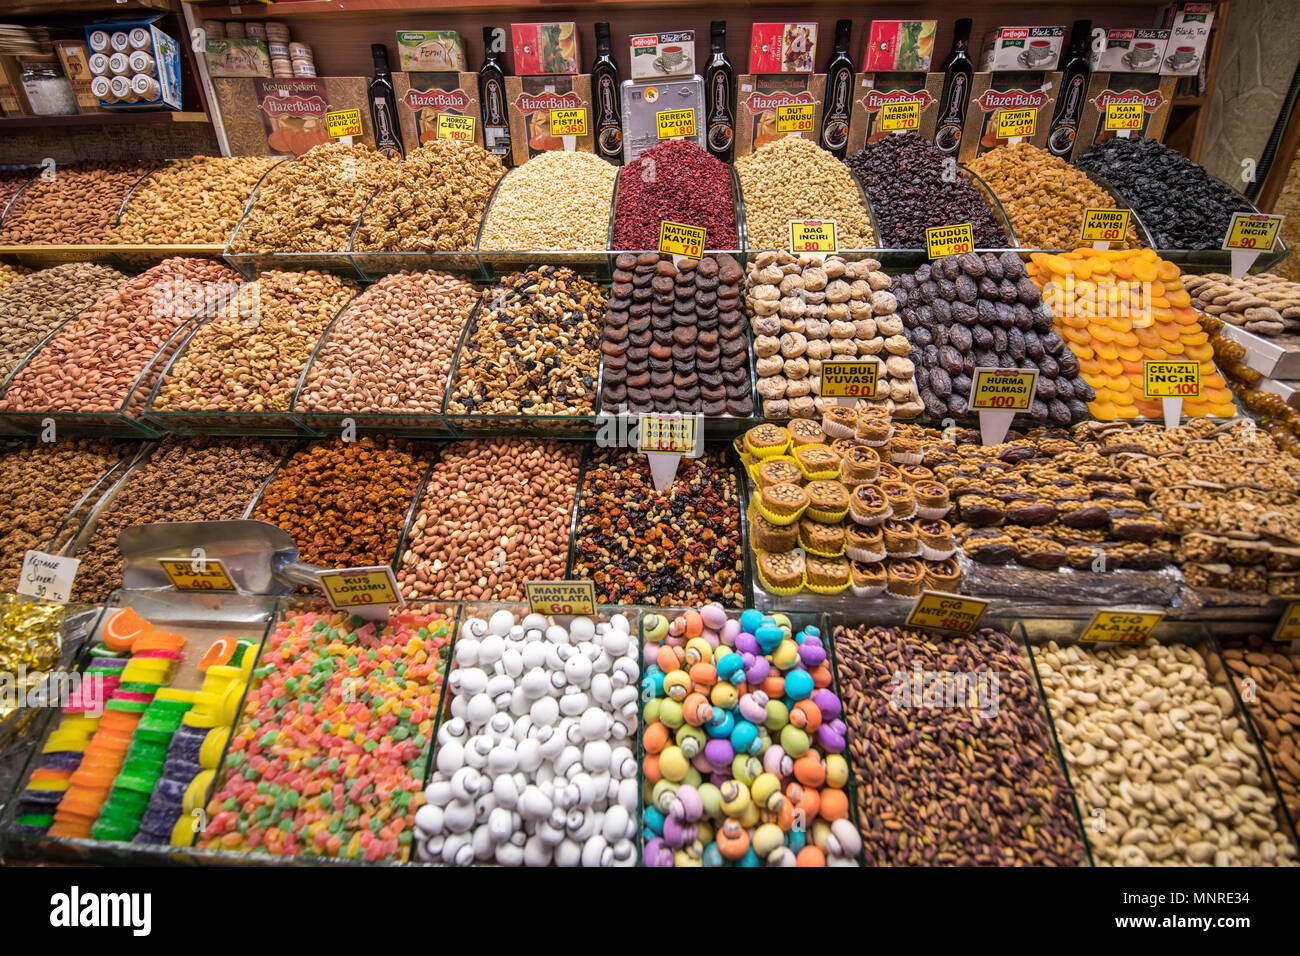 Neatly organized bins at Istanbul Spice bazaar in Turkey are brimming with sweets, nuts and dried fruits for customers to purchase - Stock Image